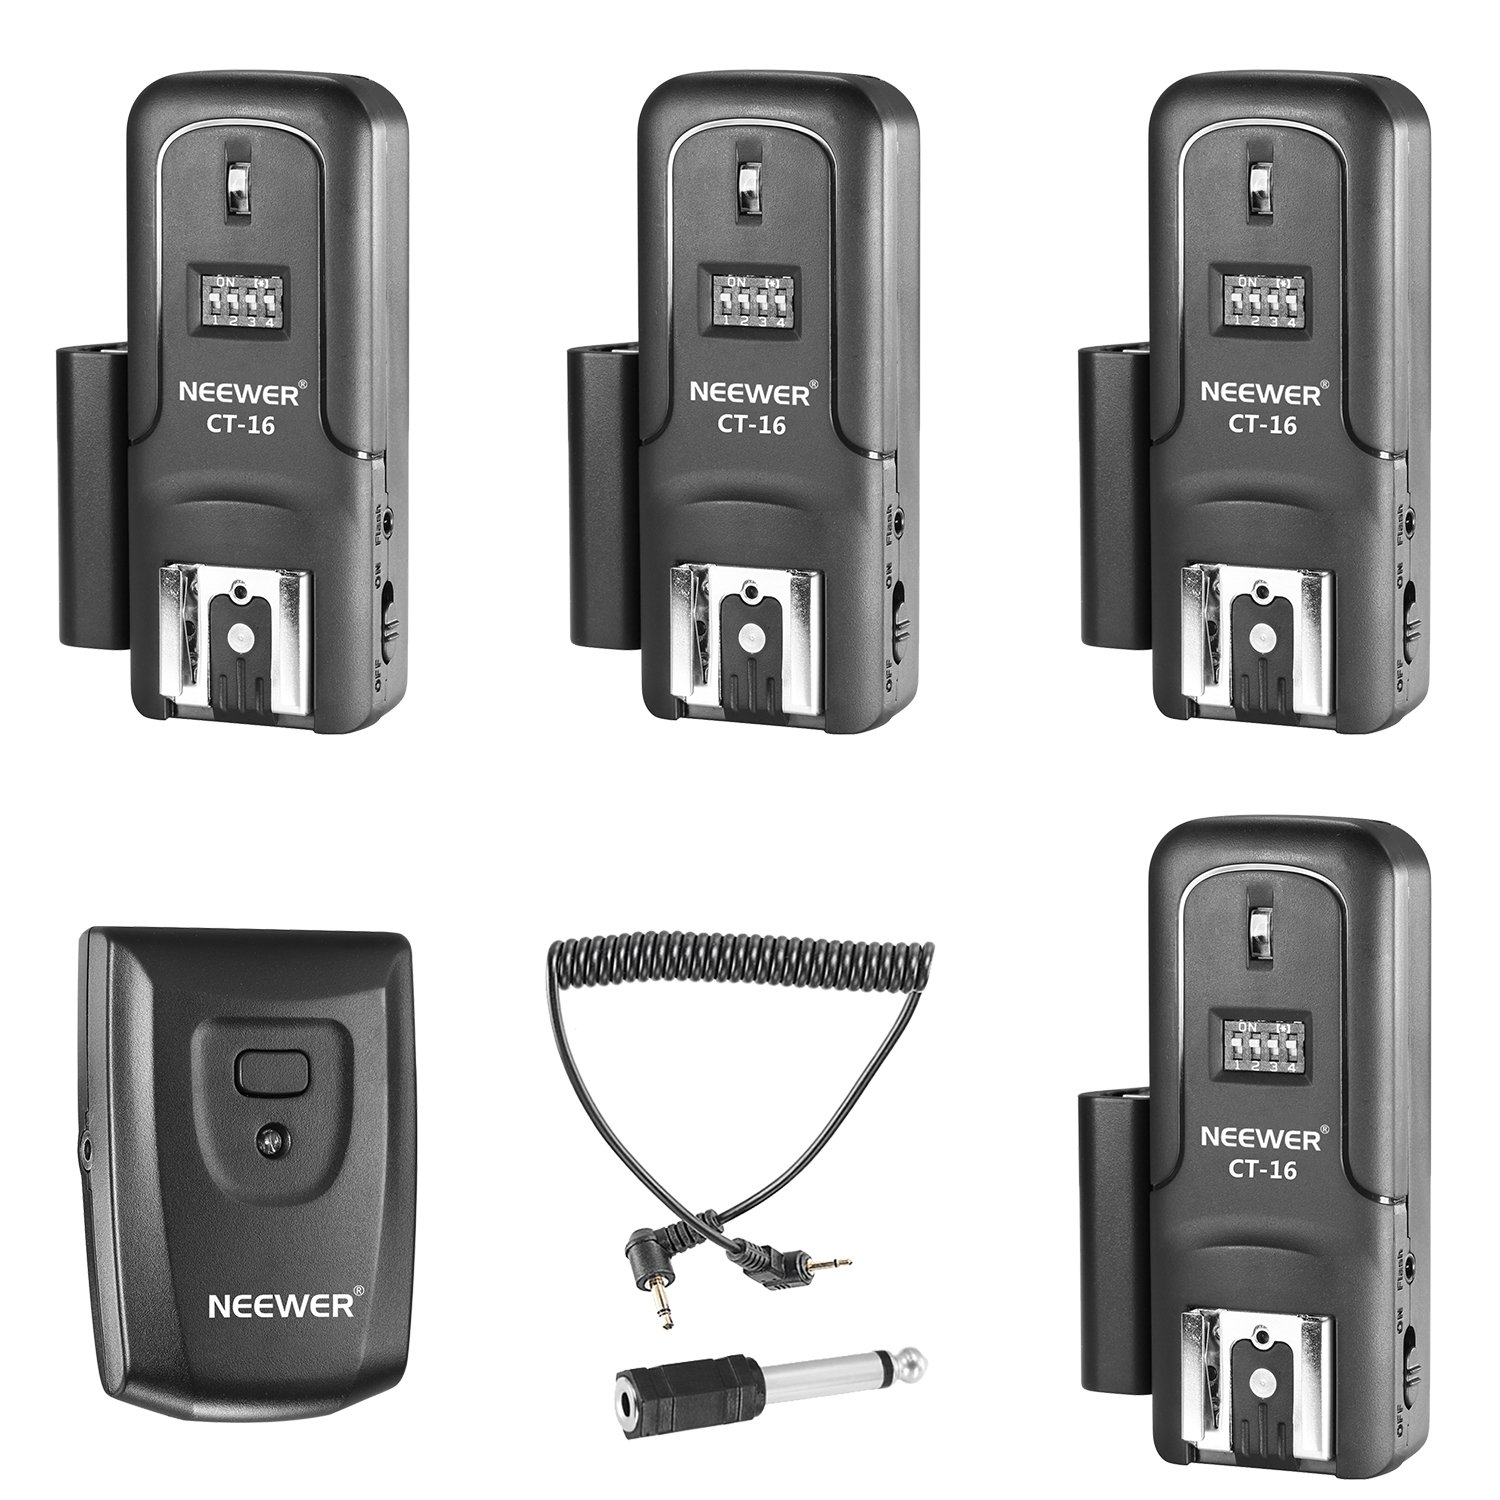 Neewer 16 Channels Wireless Radio Flash Speedlite Studio Trigger Set, Including (1) Transmitter and (4) Receivers, Fit for Canon Nikon Pentax Olympus Panasonic DSLR Cameras (CT-16) by Neewer